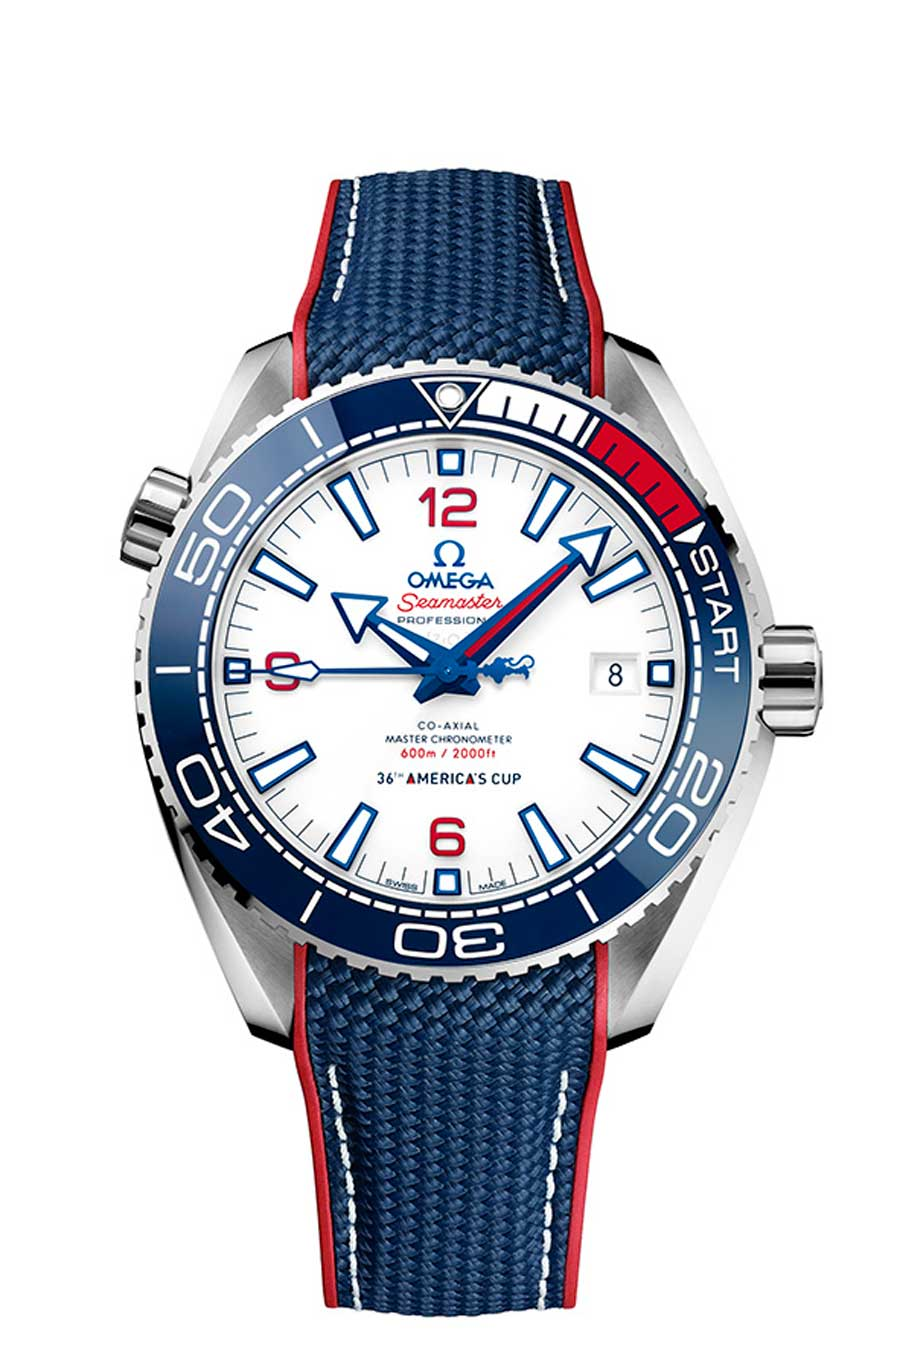 Omega Seamaster Planet Ocean 36th America's Cup Limited Edition Taucheruhrenspecial 2020